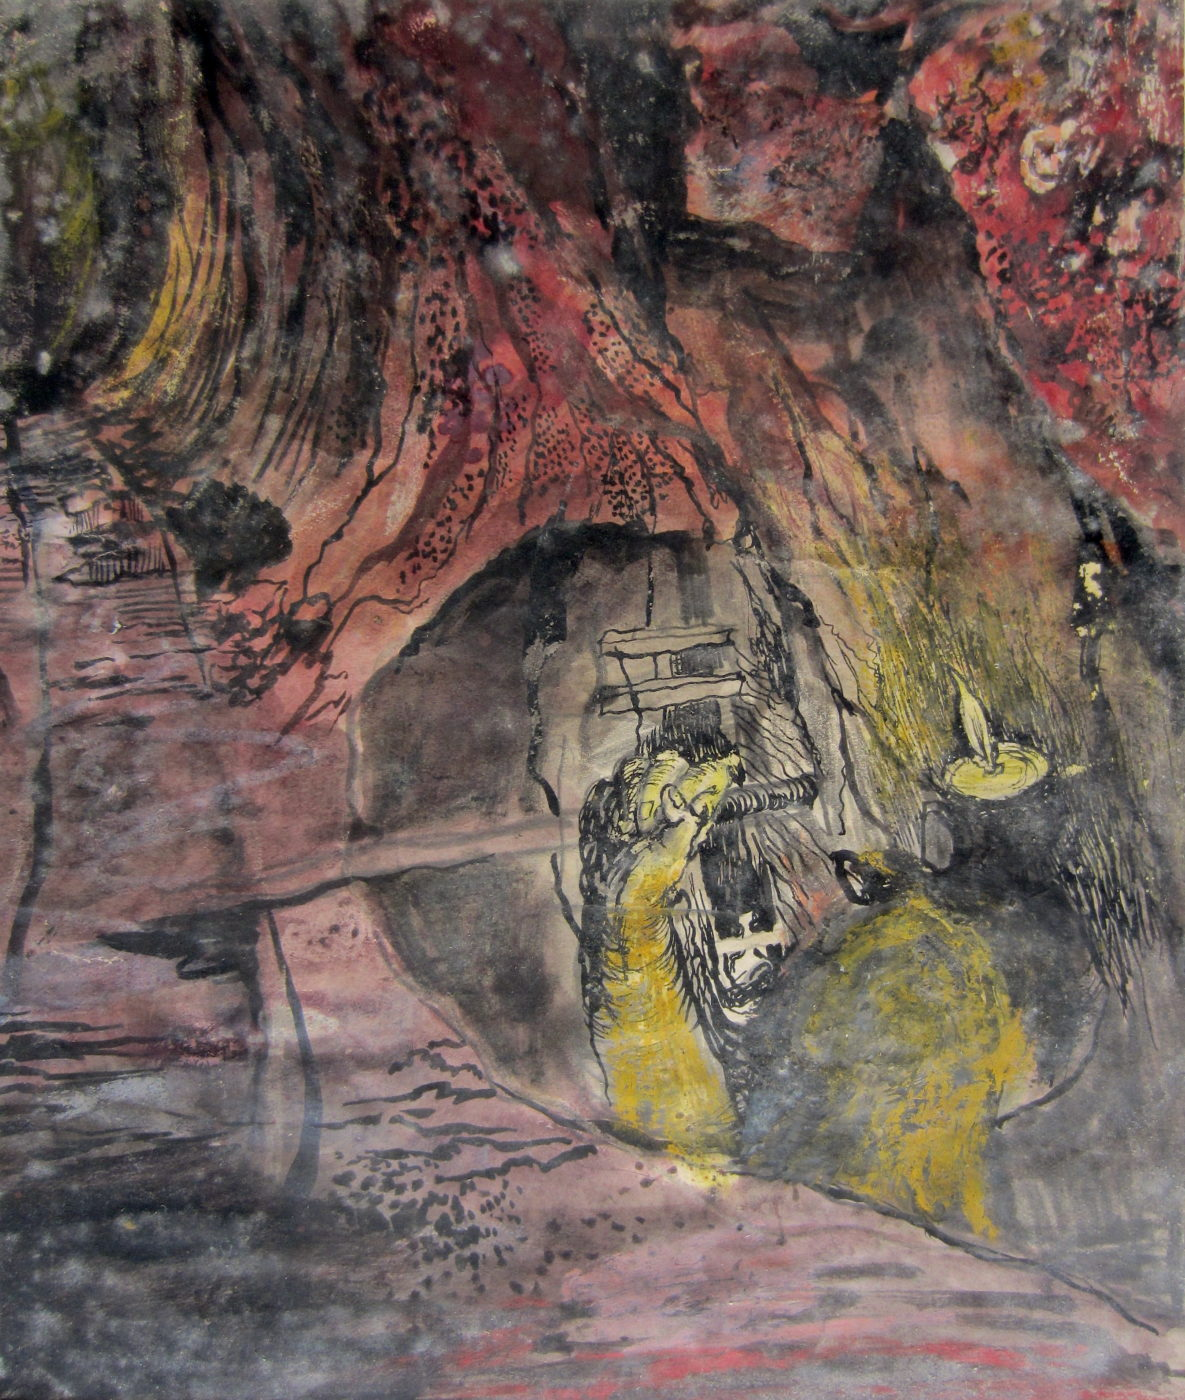 Graham Sutherland, OM (1903-1980), Tin Mine-Miner emerging from a Stope